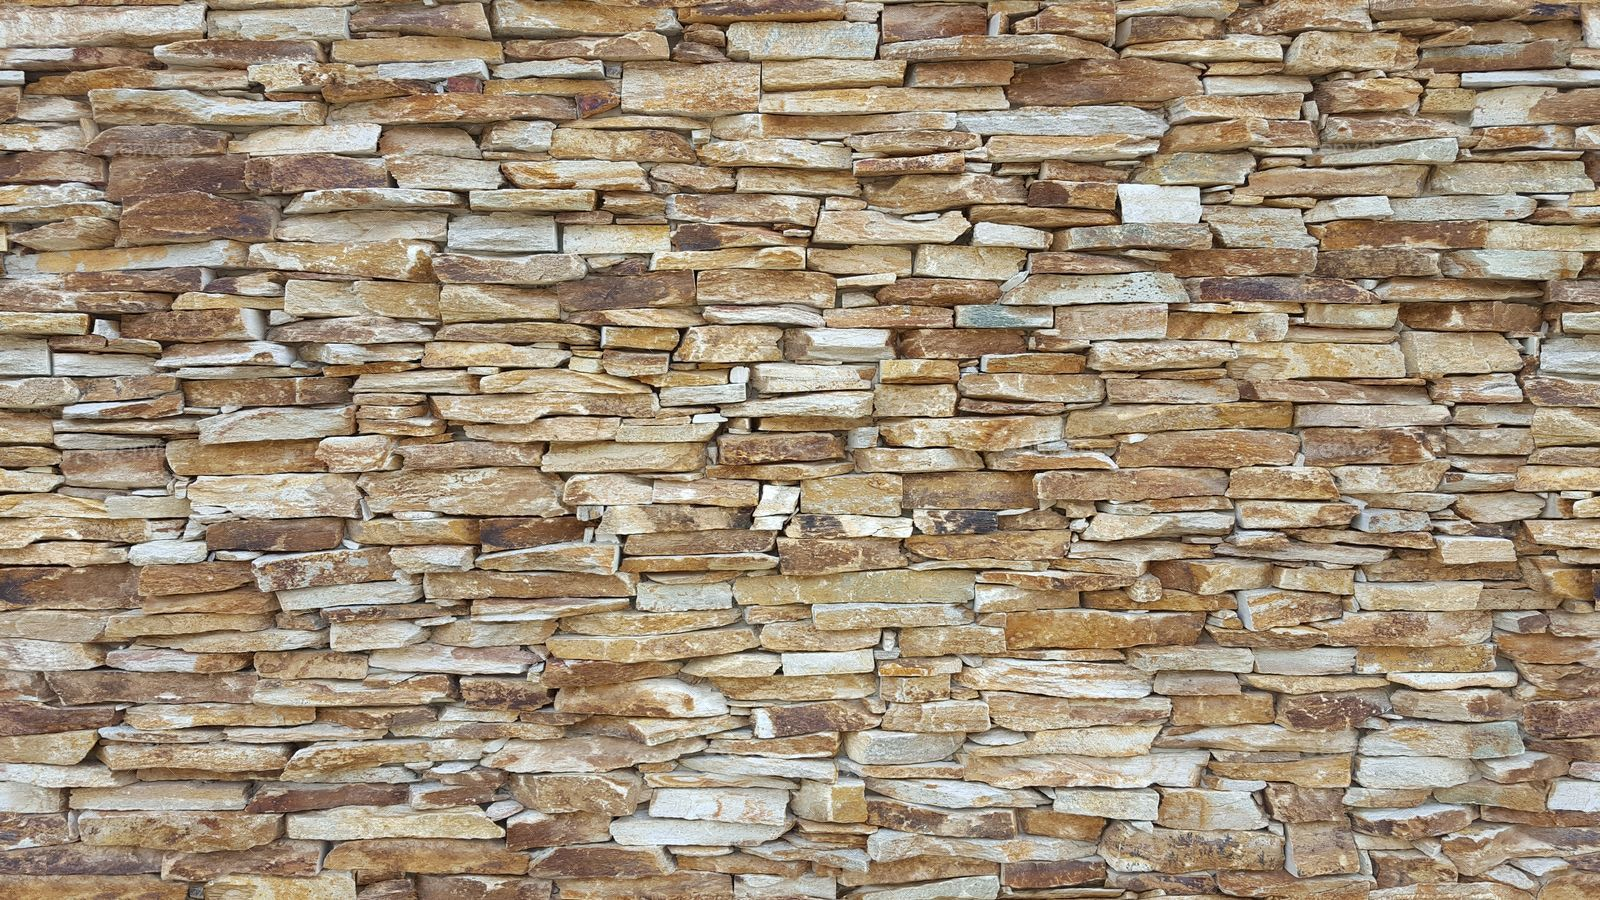 Stone Wall Seamless Texture Stone Wall Cladding Texture